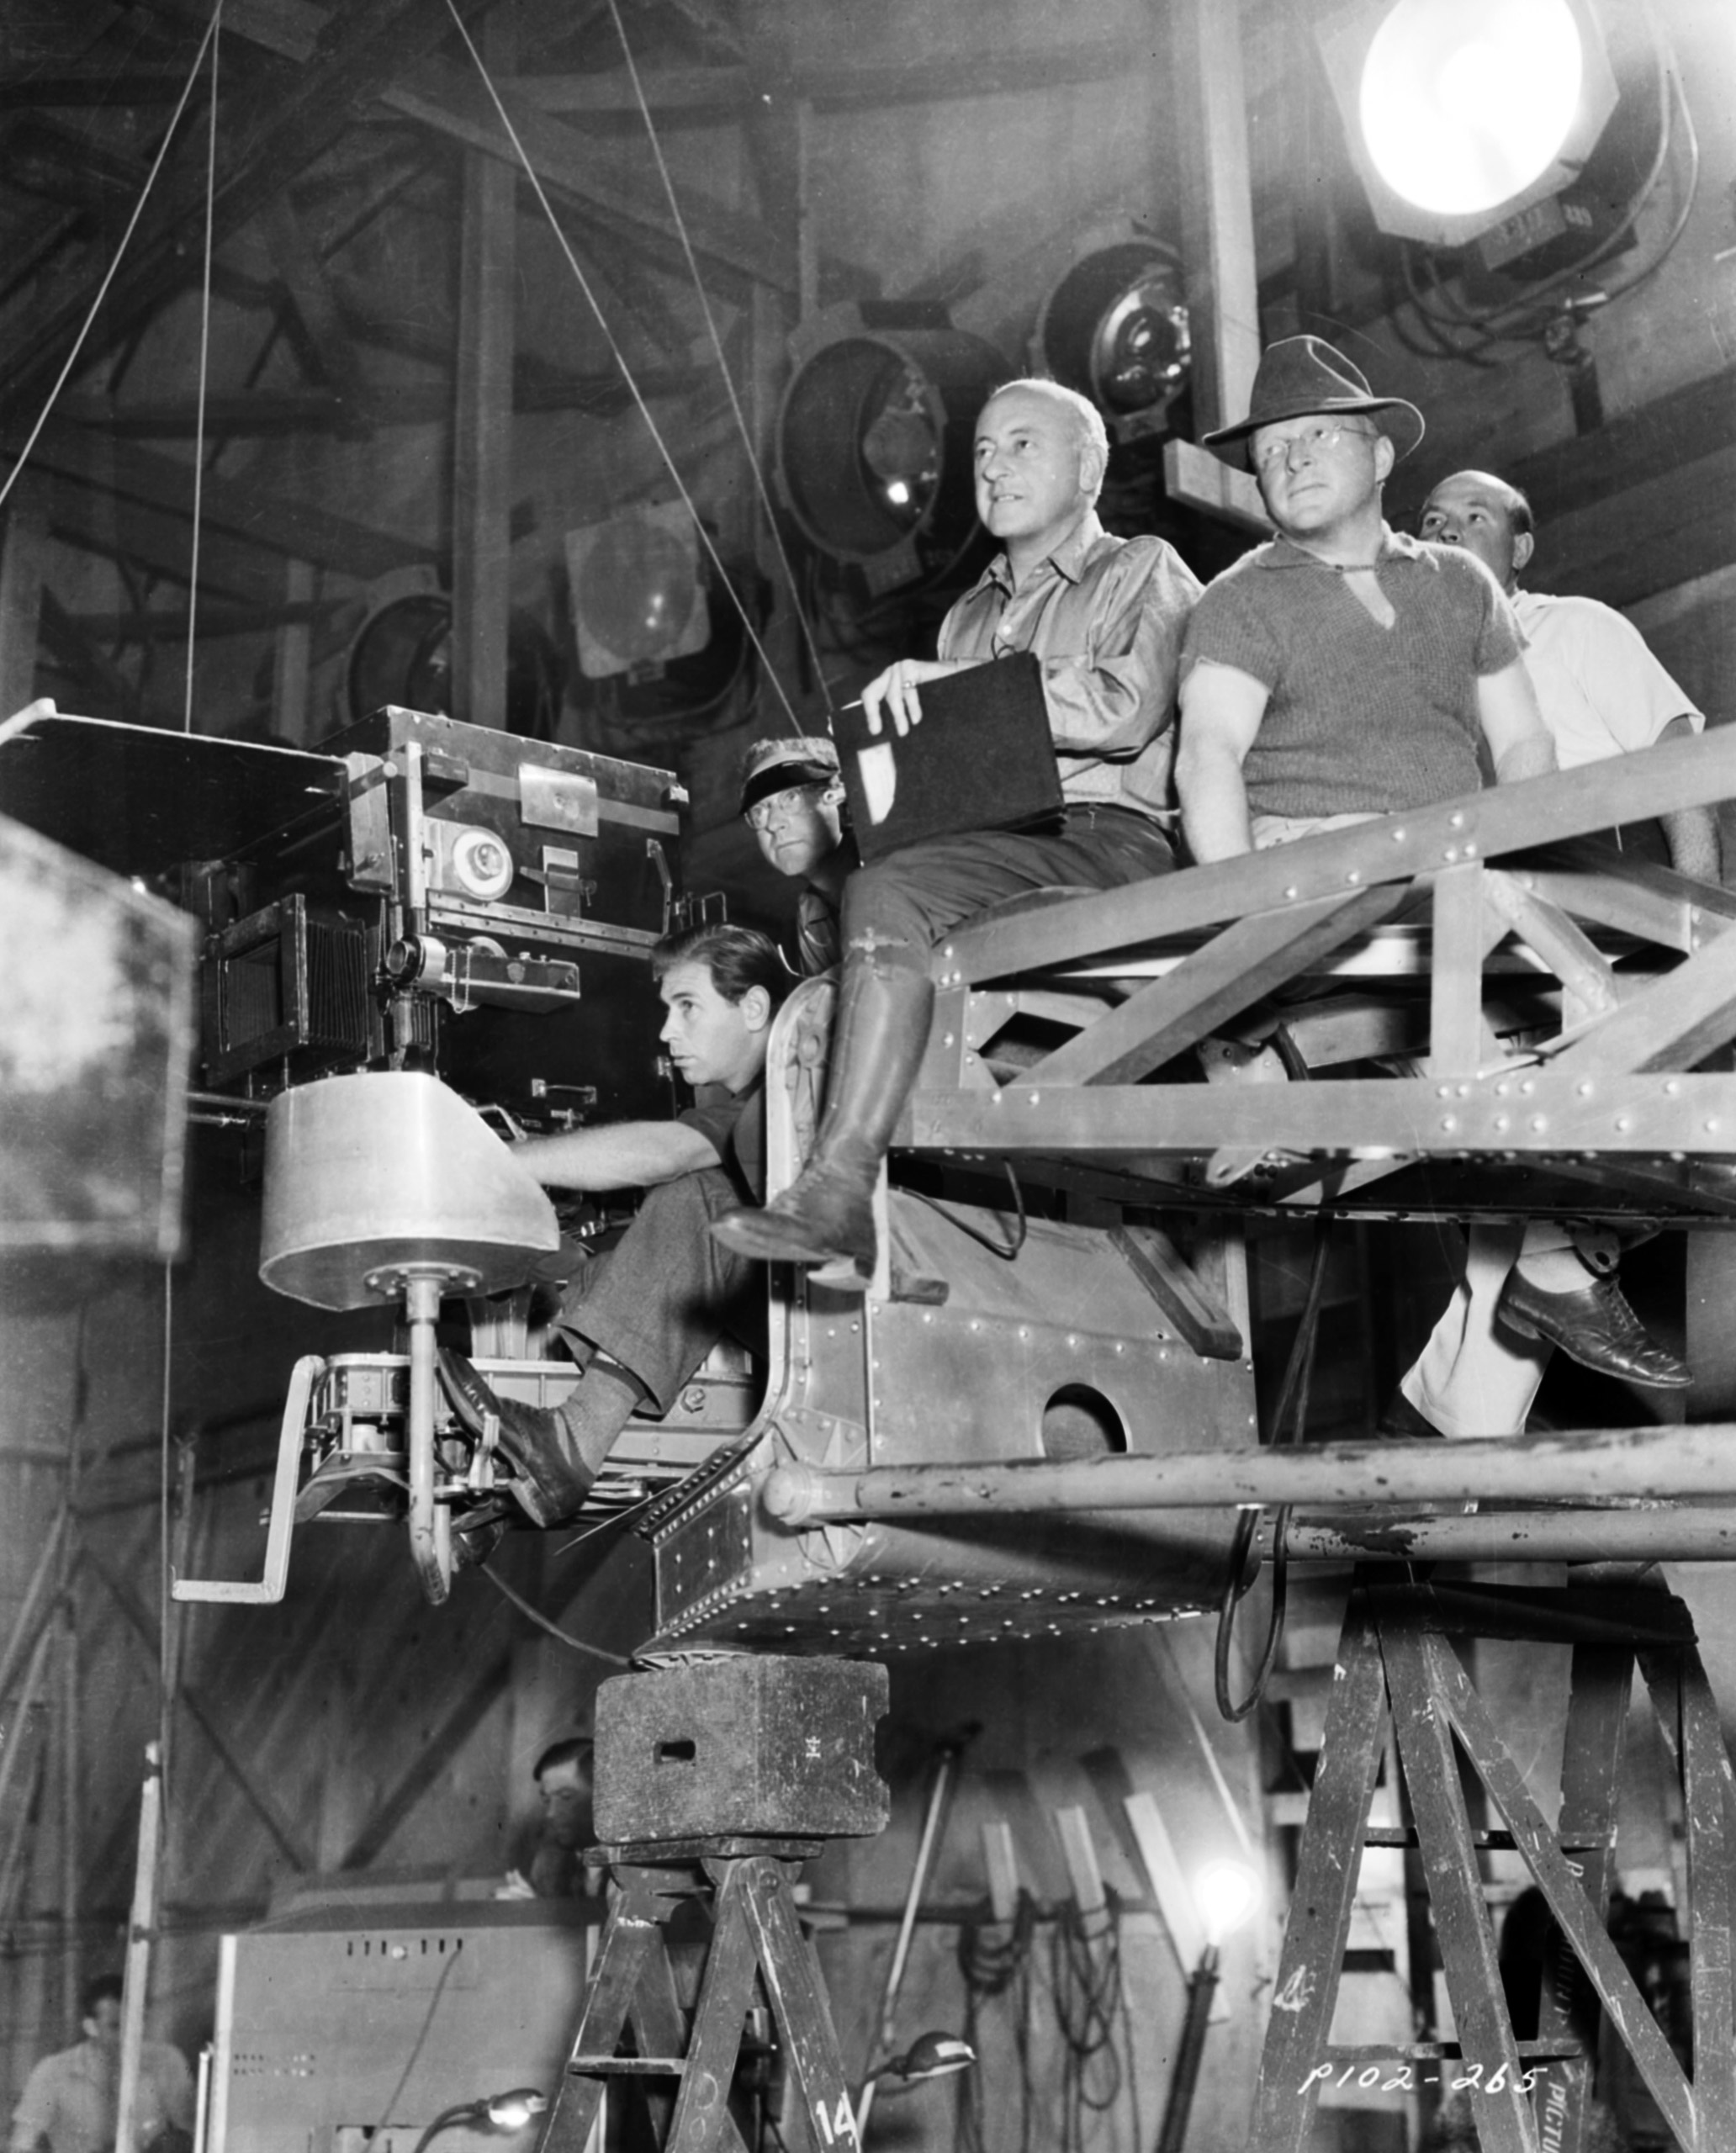 Cecil B DeMille sitting on a camera rig with members of his crew, on the set of the film 'Samson and Delilah', for Paramount Pictures, 1949.